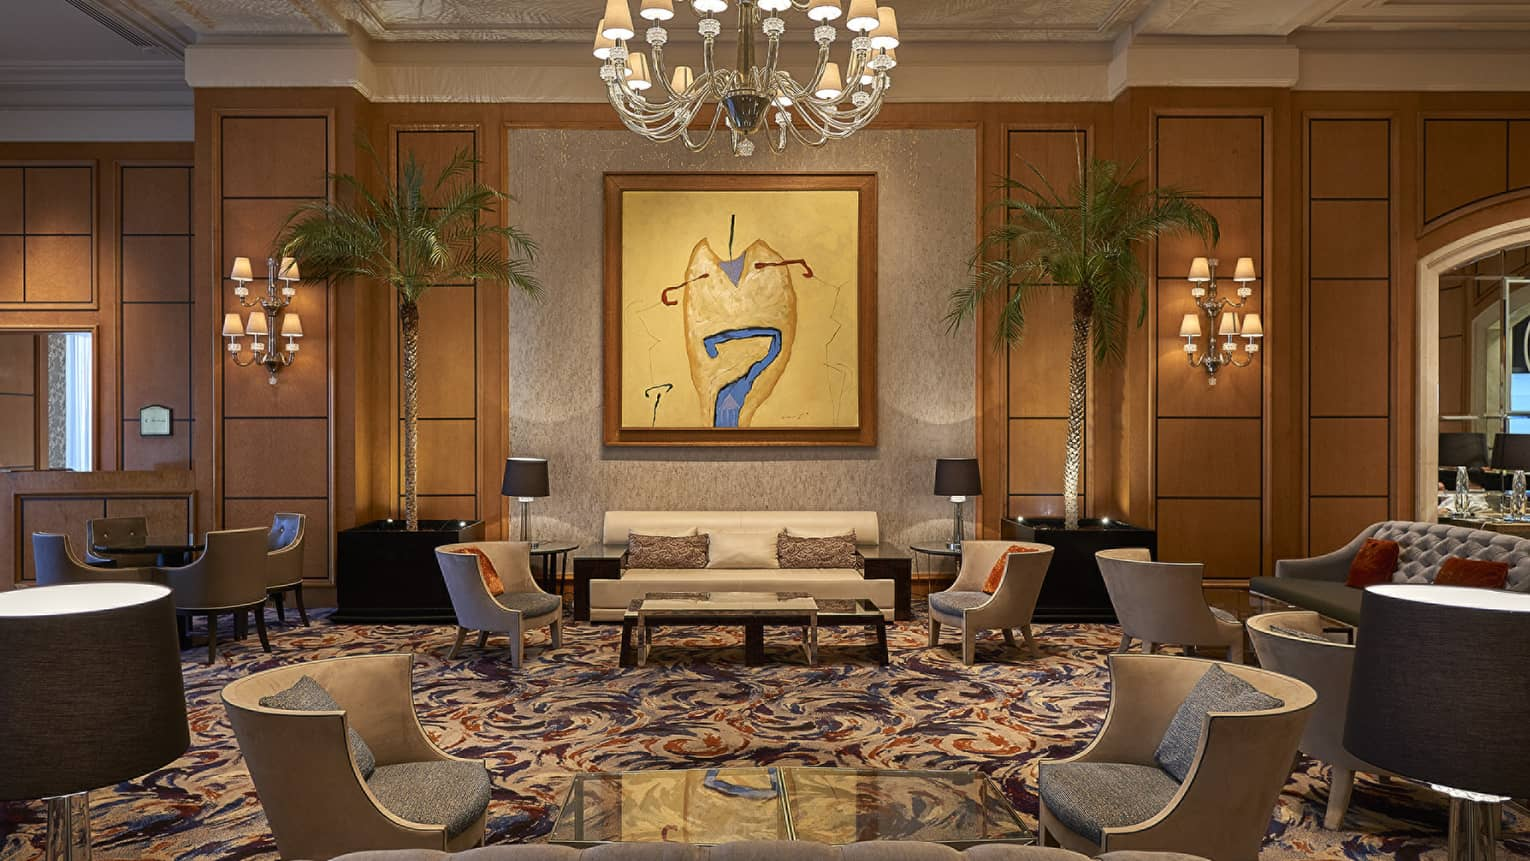 Lobby art gallery seating area displaying abstract painting by Egyptian artist Farouk Hosny